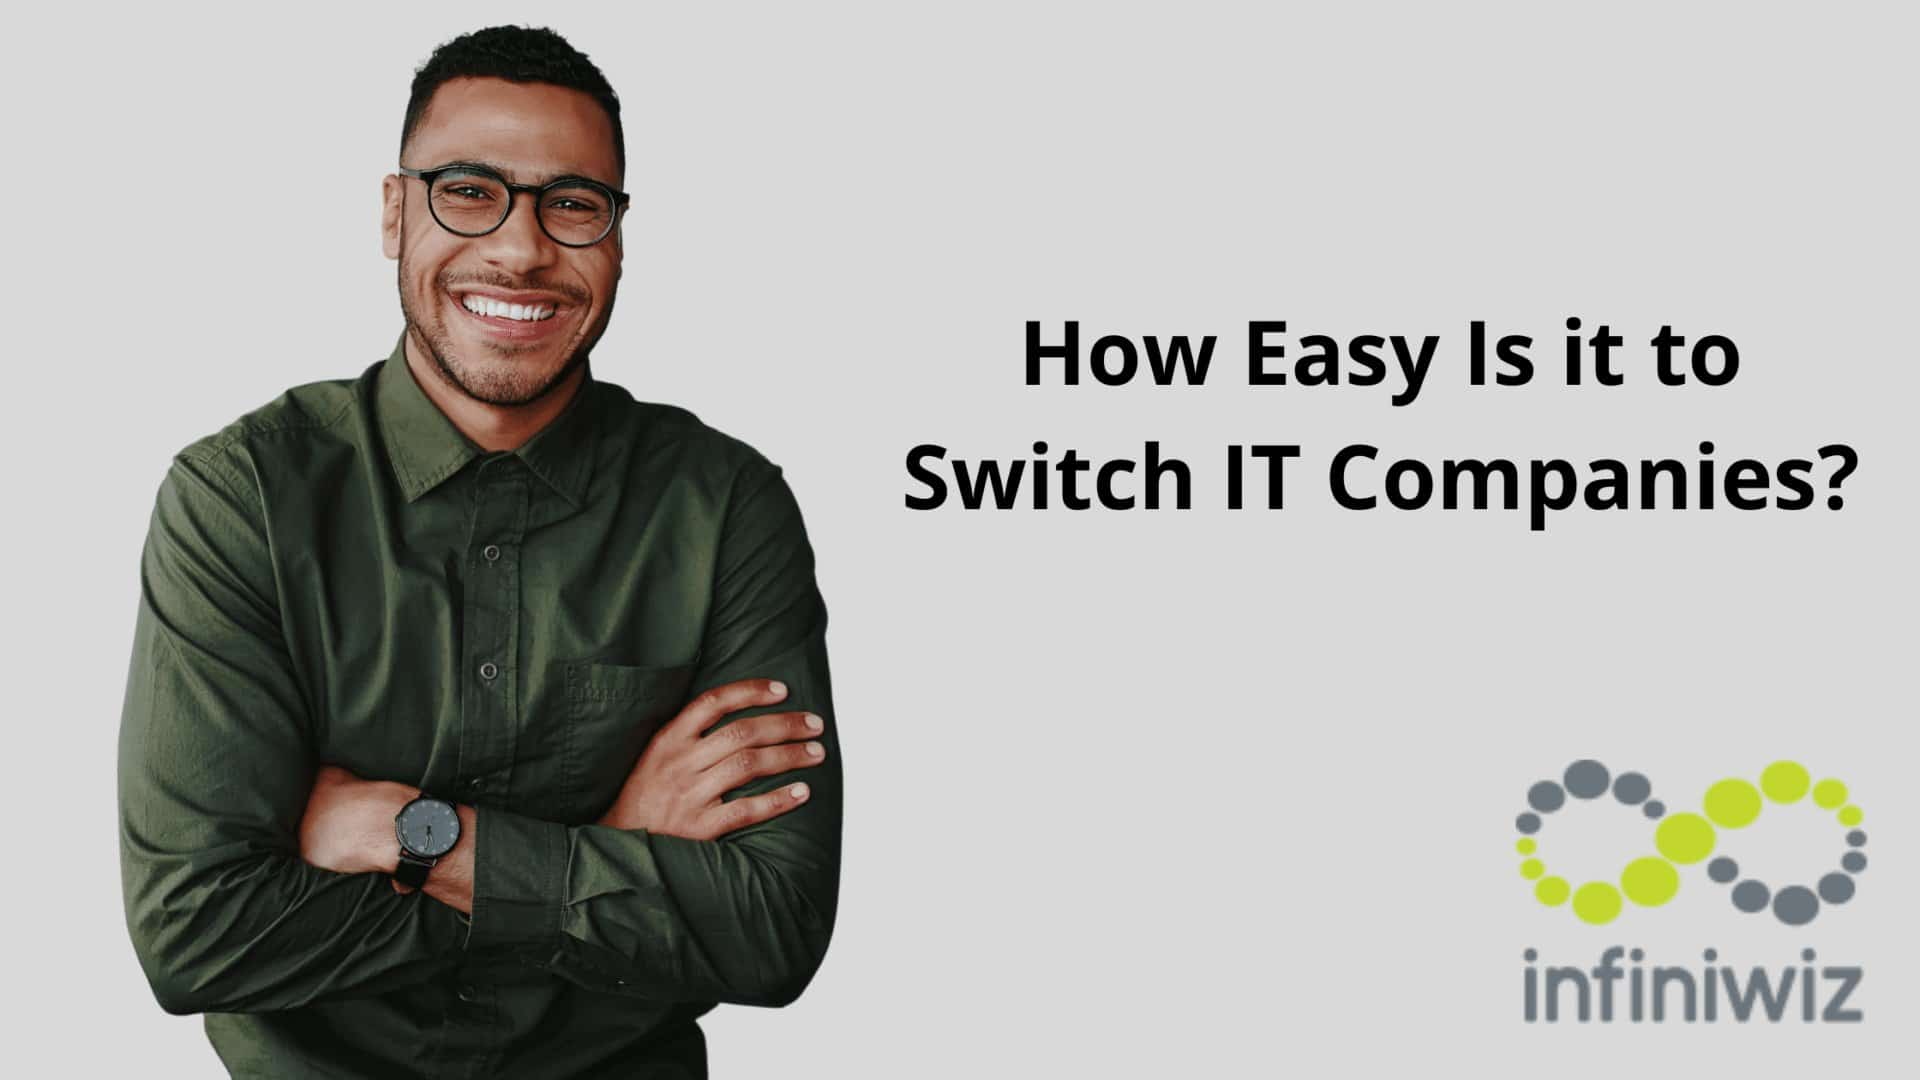 How Easy Is it to Switch IT Companies?